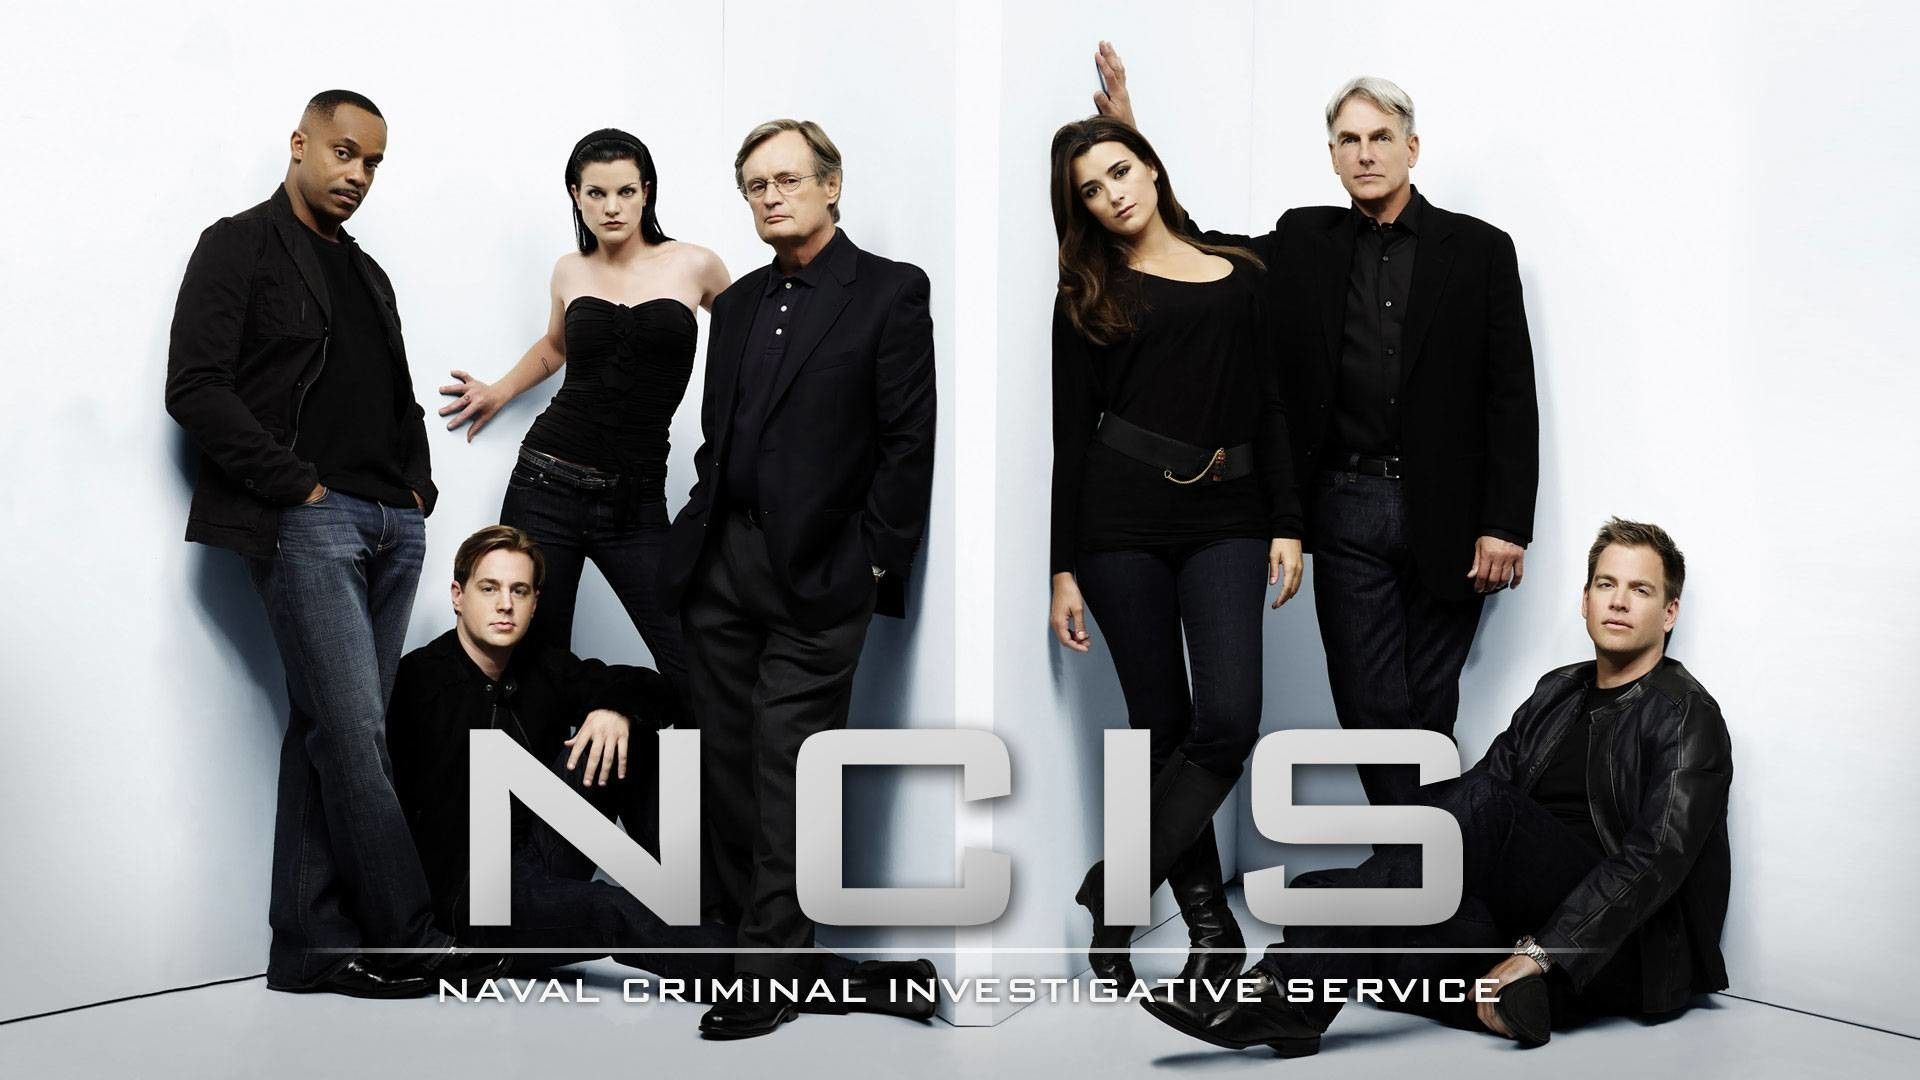 1920x1080 Ncis Wallpapers and Screensavers (74+ images)